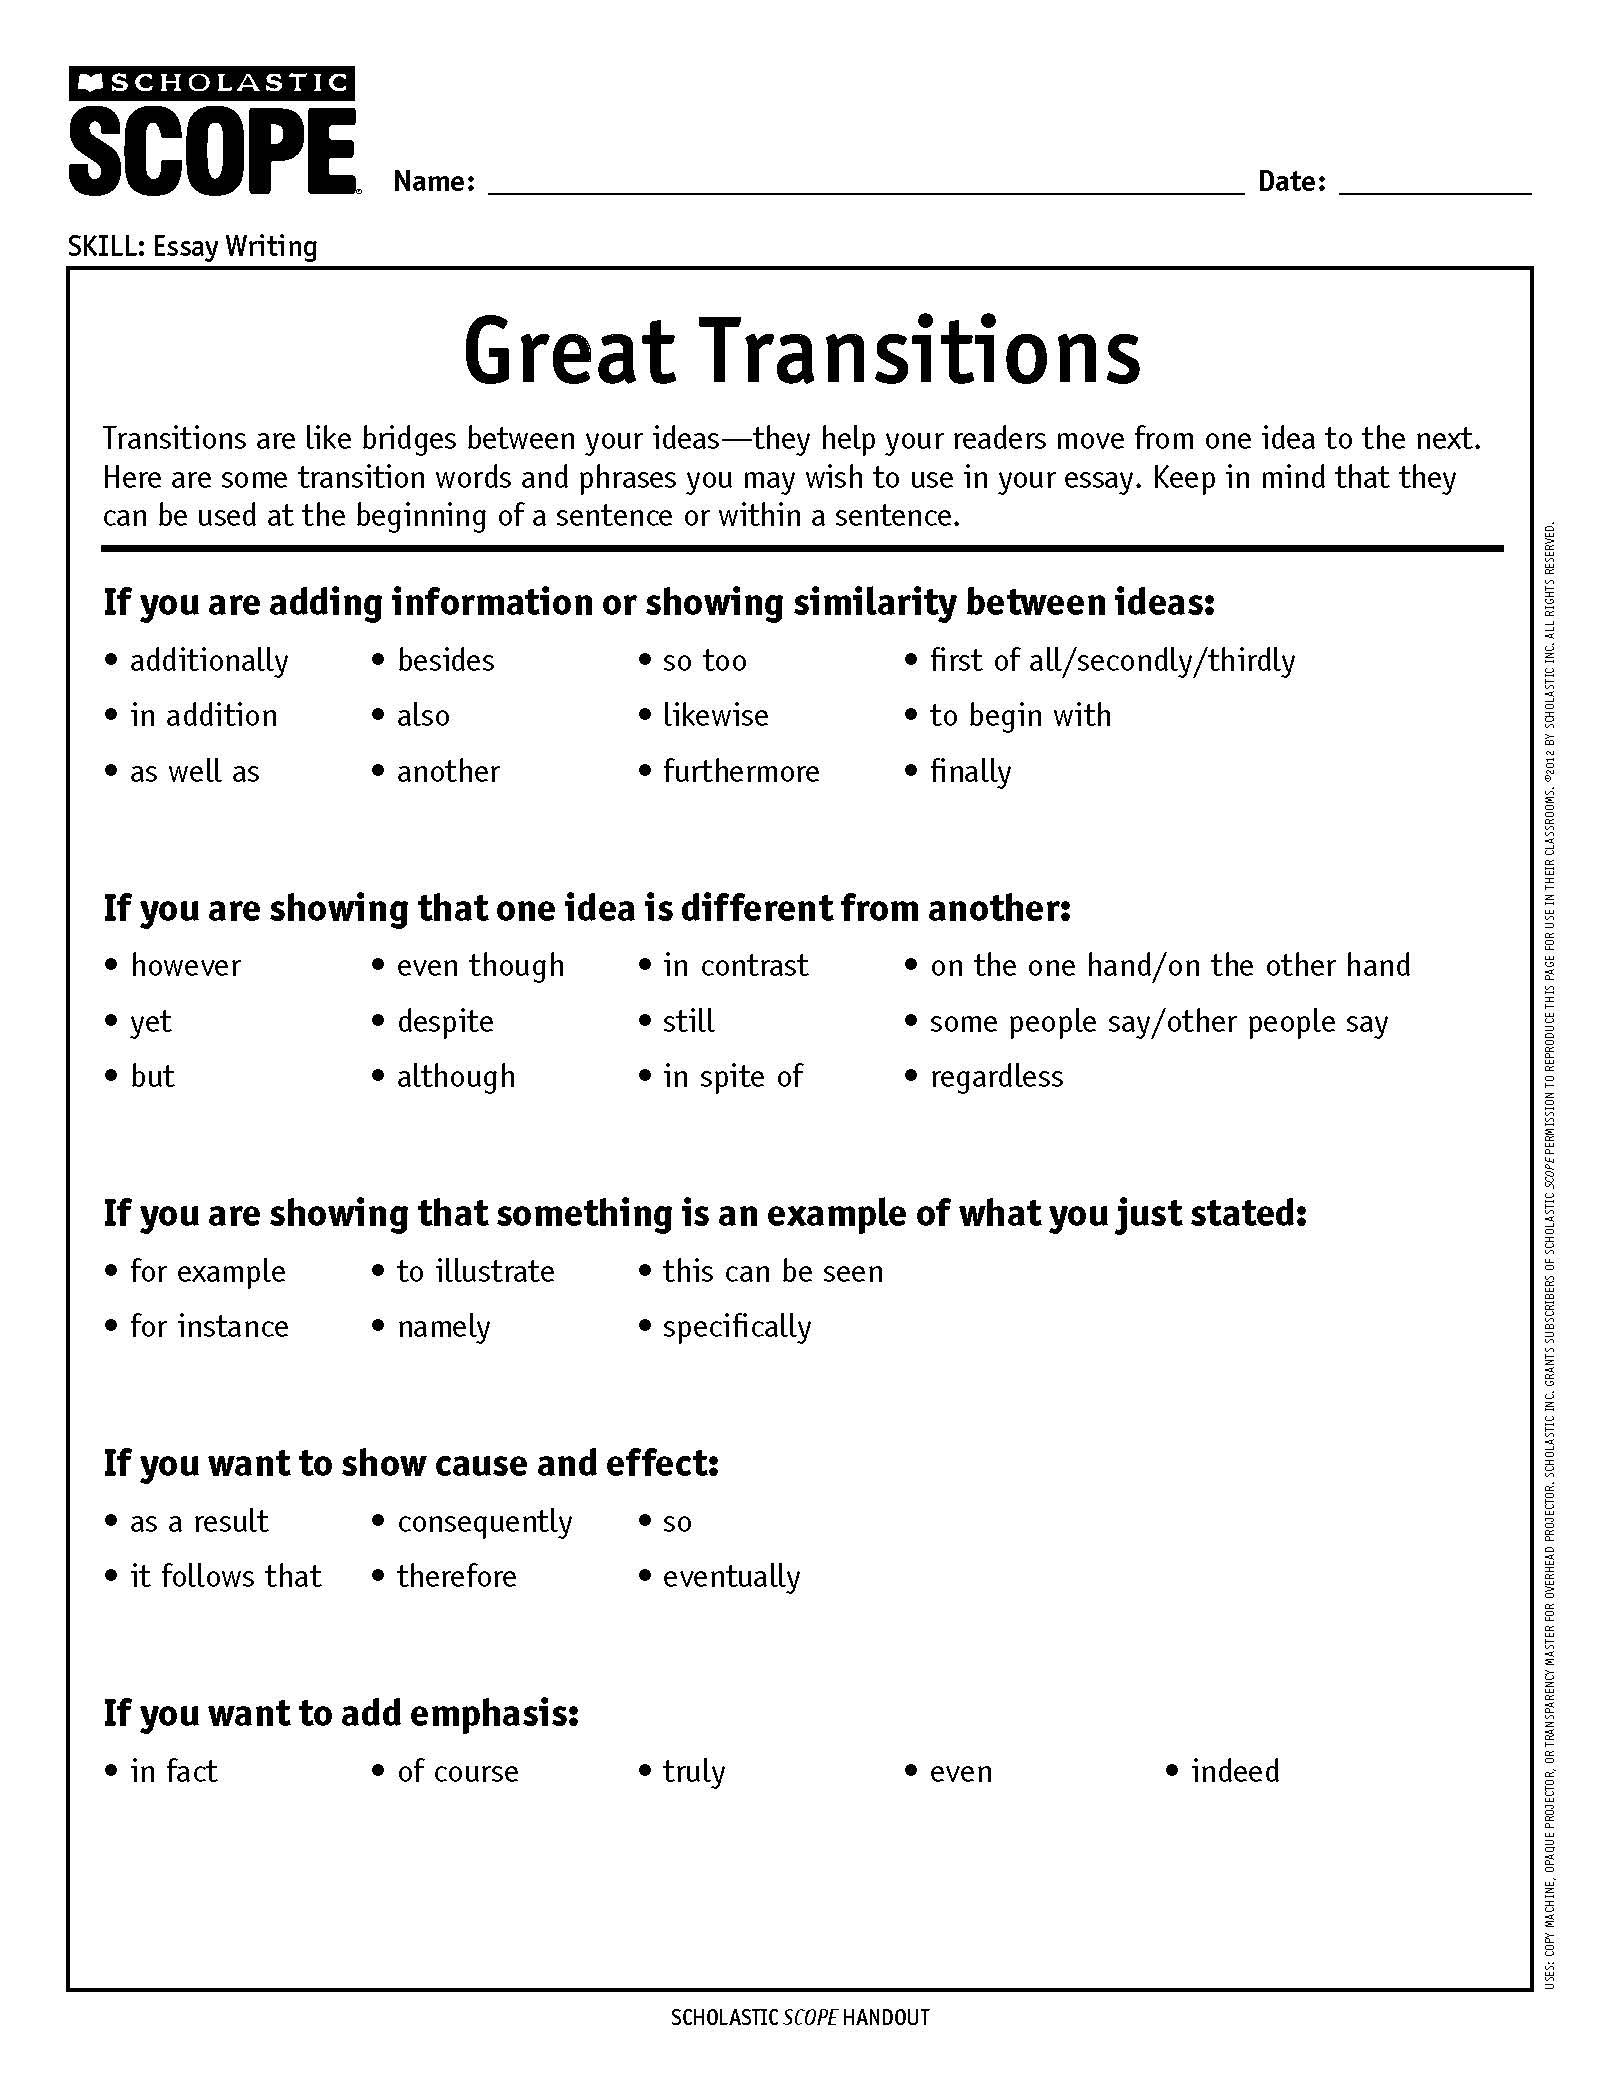 019 Essay Example Transitions How To Choose The Perfect Transition Word Or Phrase Writing Words For An List Of Transitional Essays Pdf Archaicawful Contrast Sentence Examples Conclusion In Spanish Full